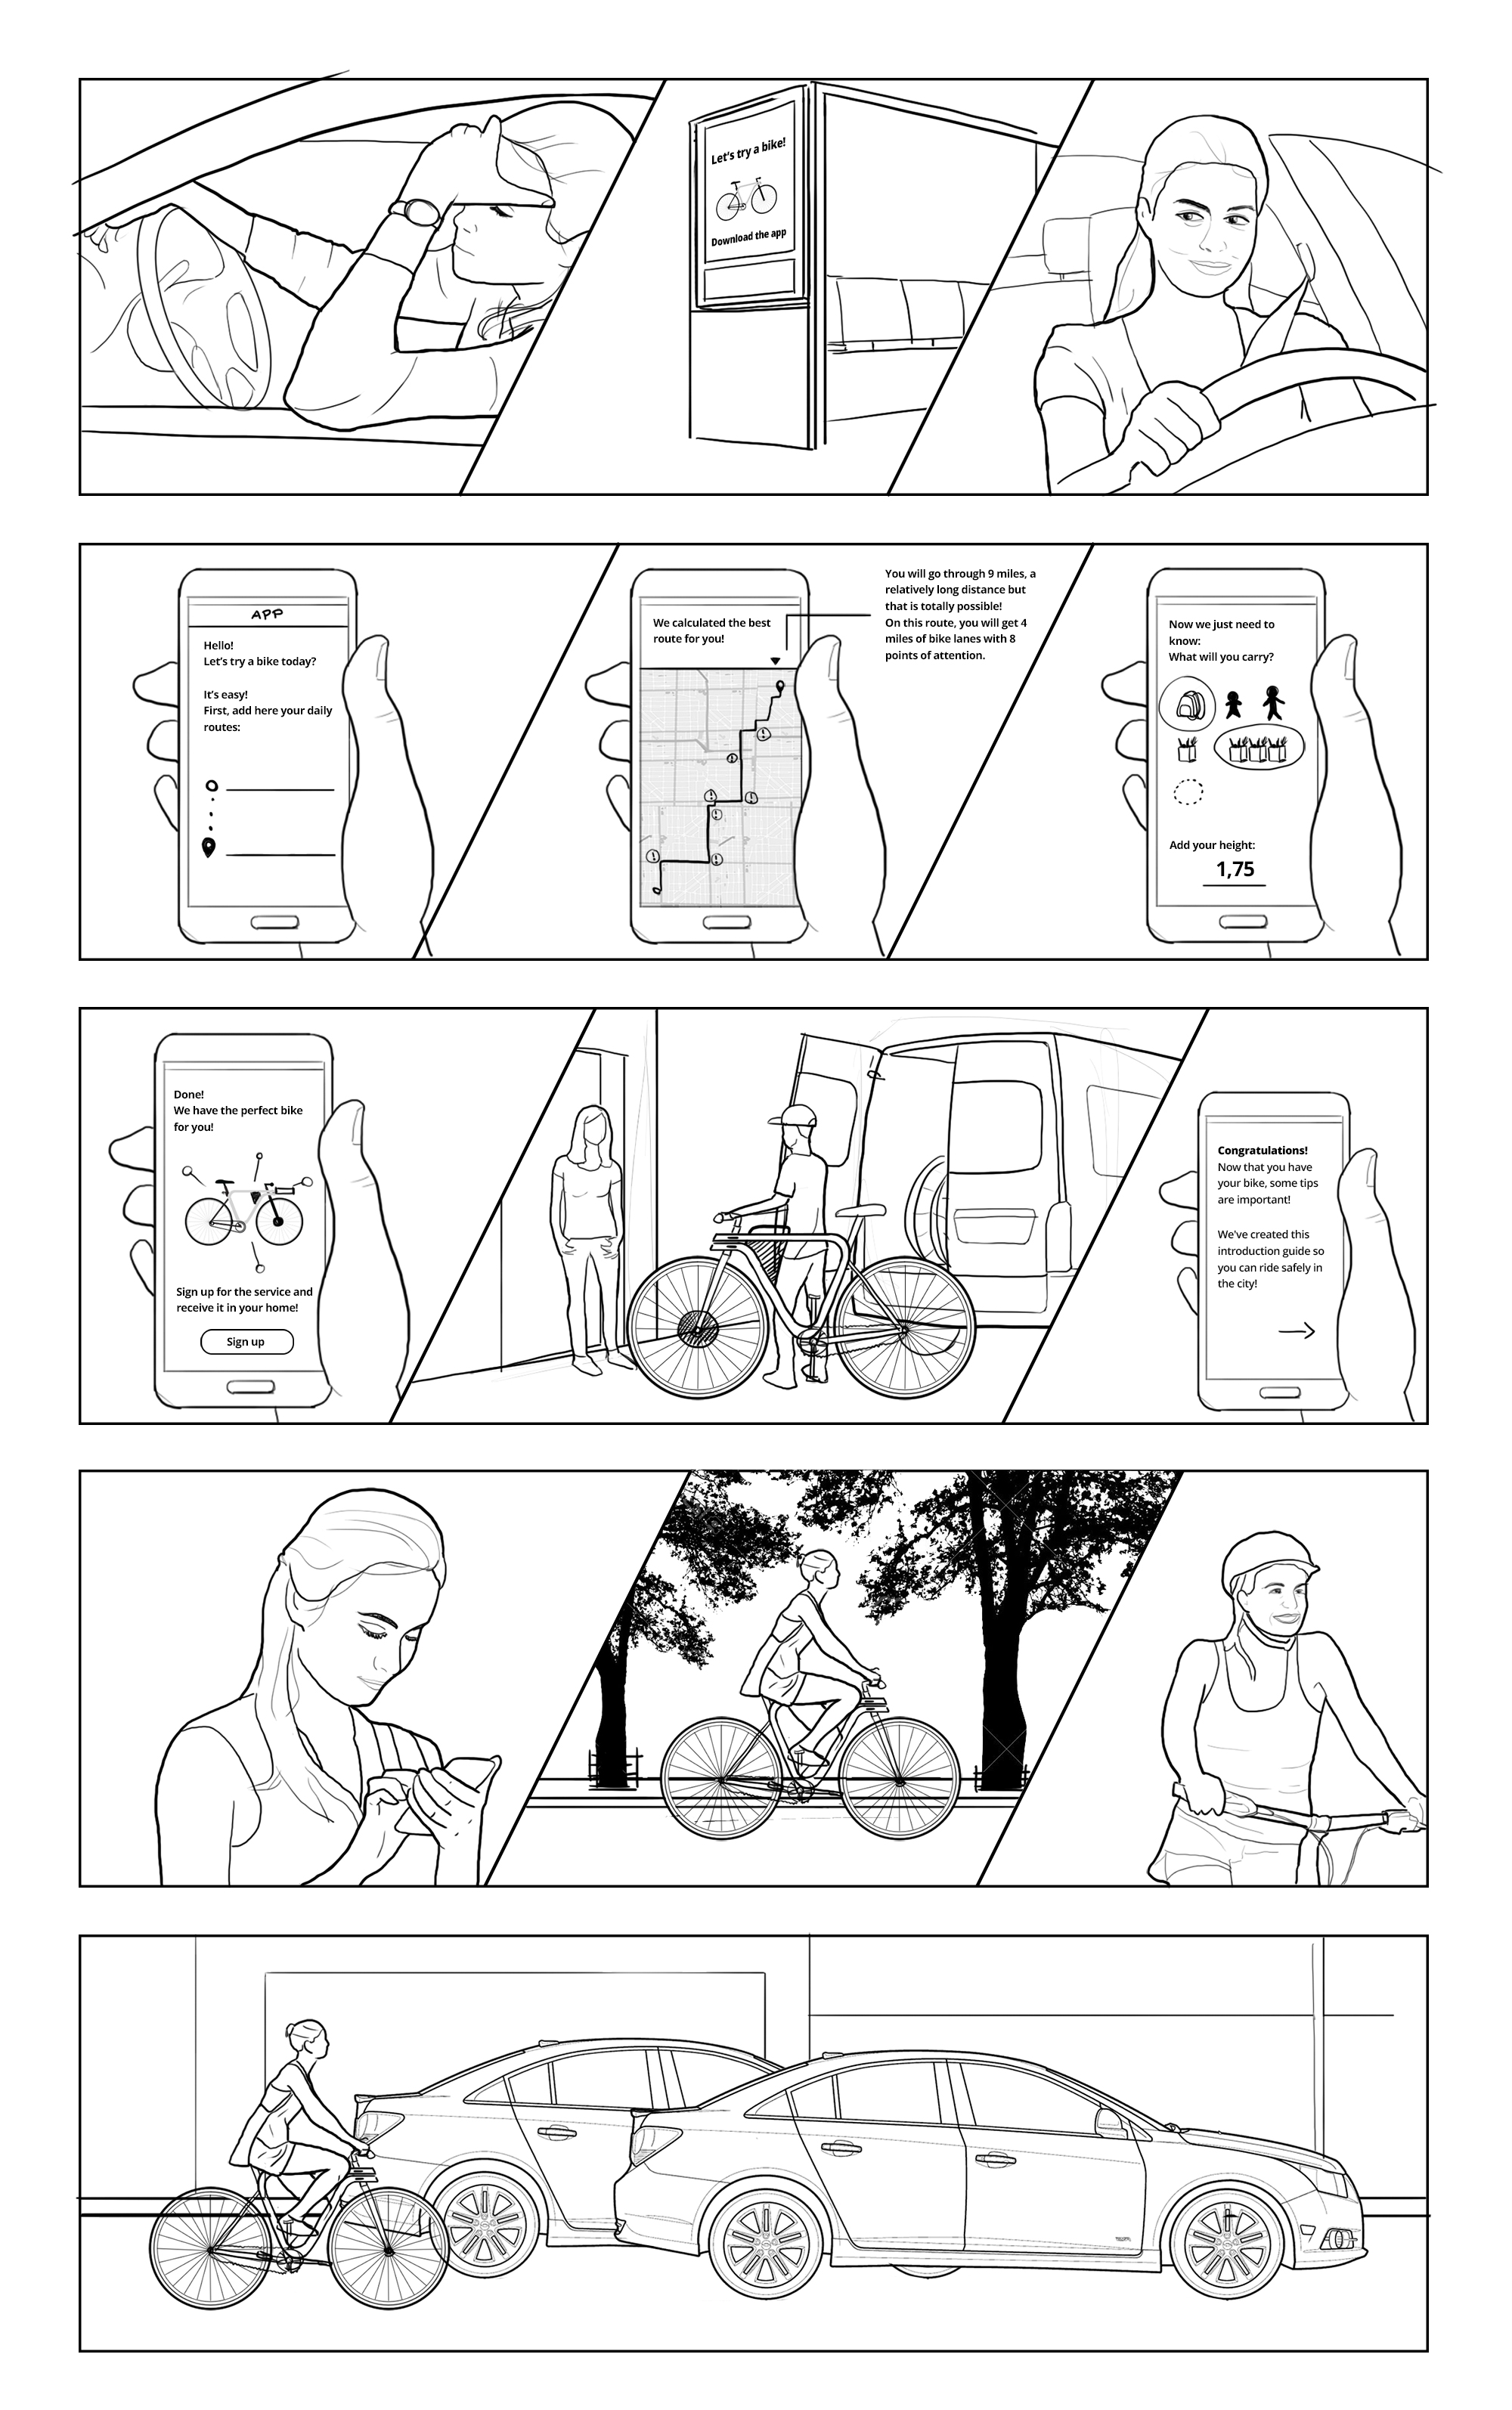 BIKE_SKETCHES_STORYBOARD_ENGLISH1.jpg